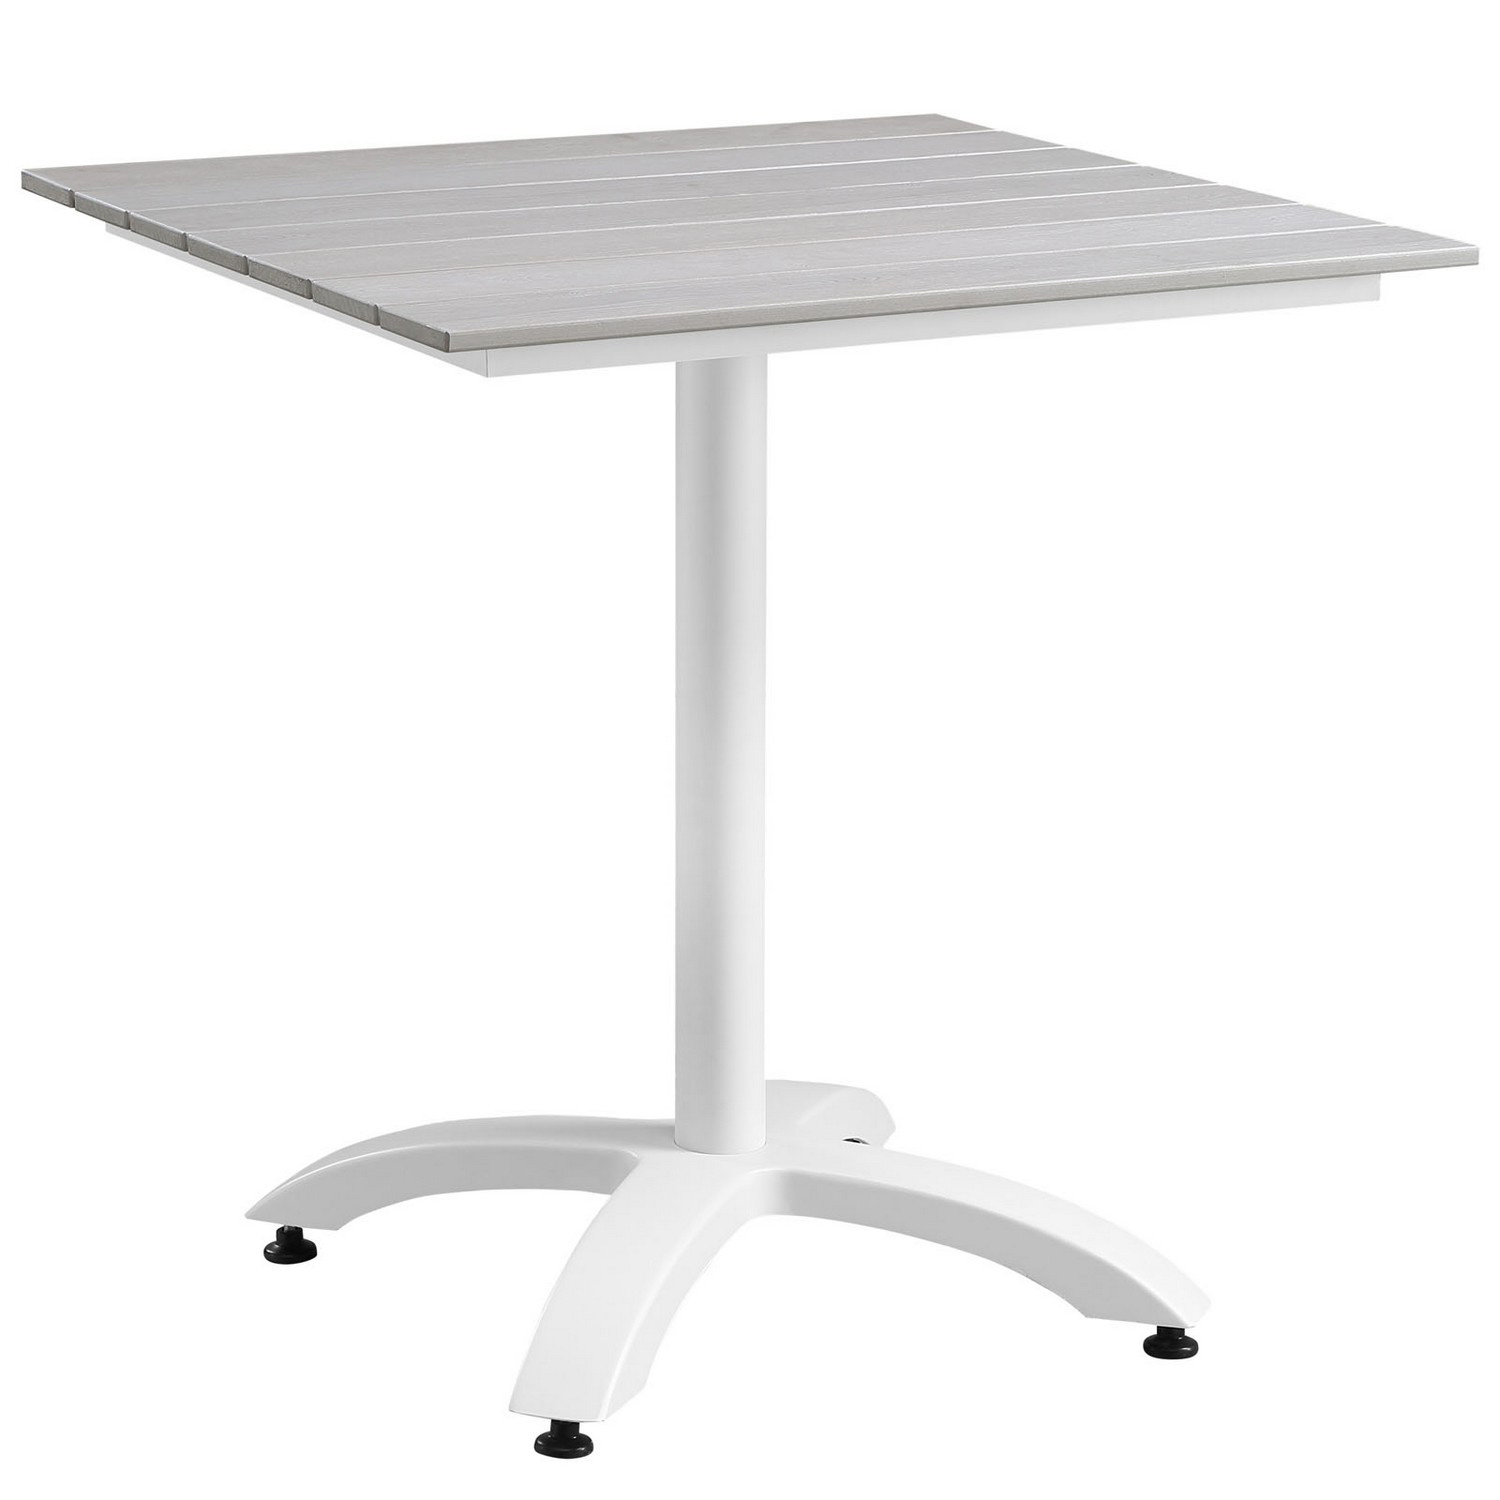 Modway Maine 28 Outdoor Patio Dining Table - White/Light Gray